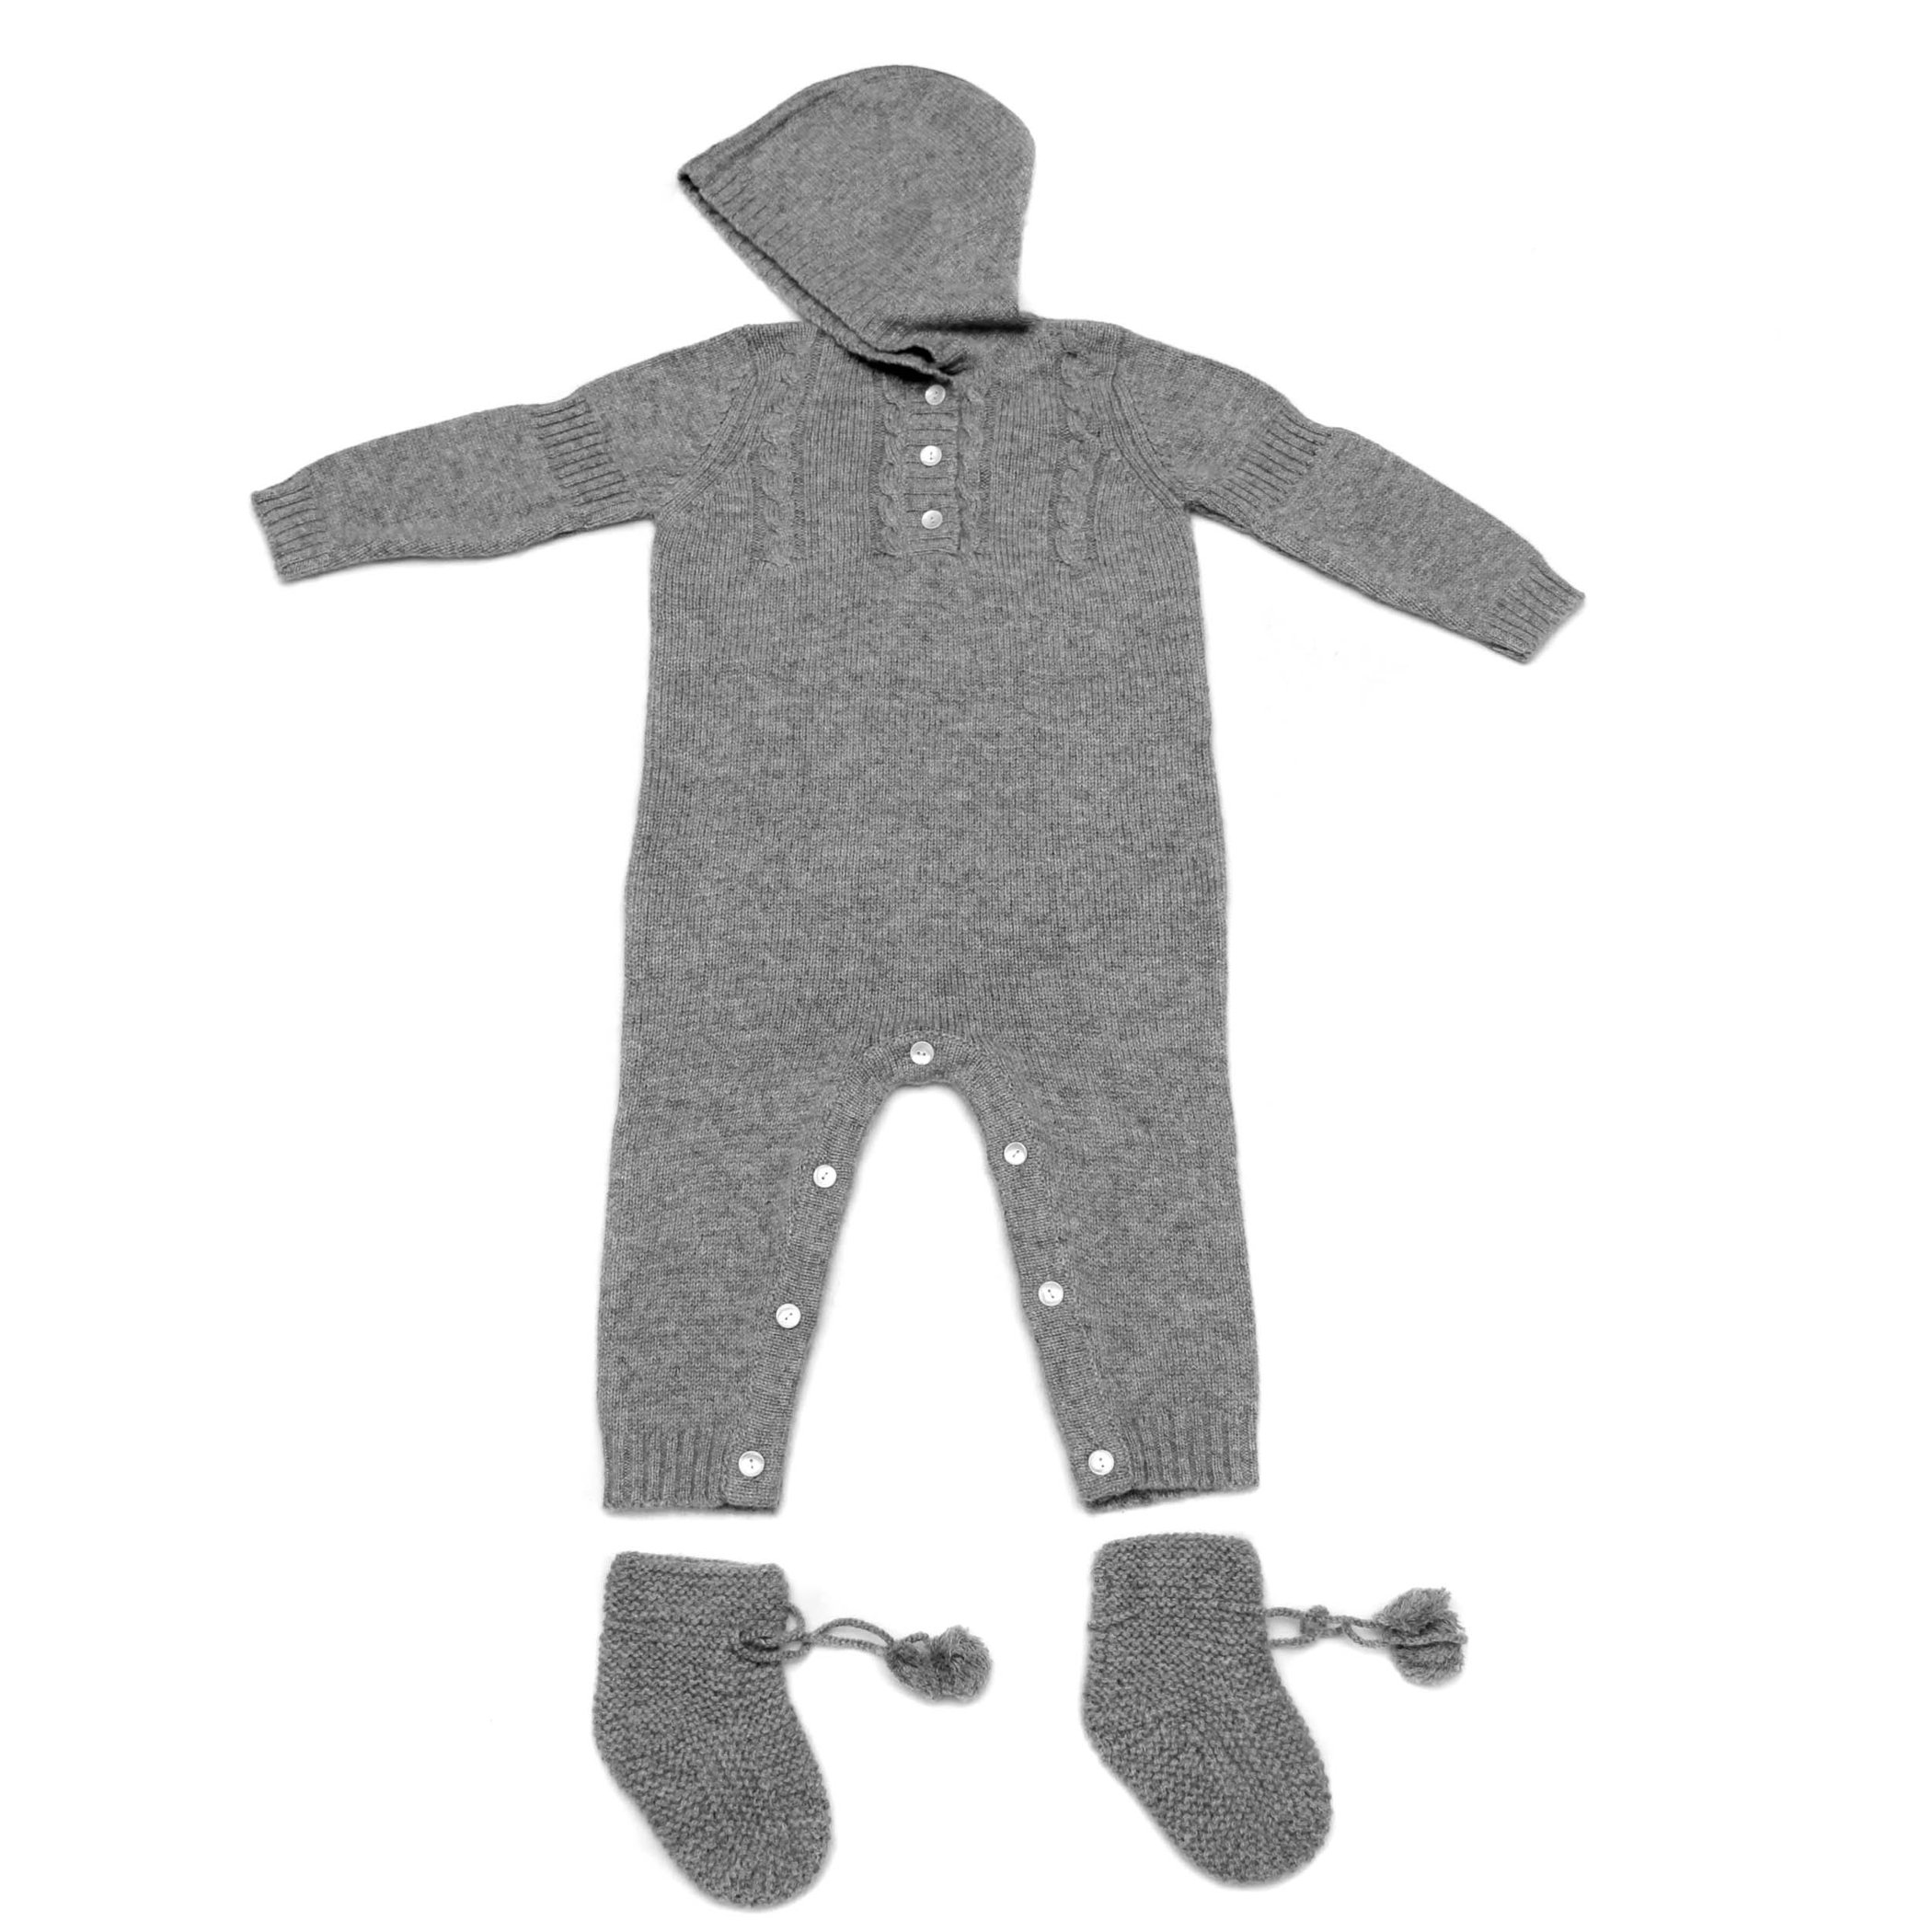 100% Cashmere Baby Bodysuit Set, Buttoned Bodysuit Cable-Knit Pattern, Hand-Knitted, 3 PLY 26/2 Mongolian Yarn © Moksha Cashmere by Moksha Cashmere